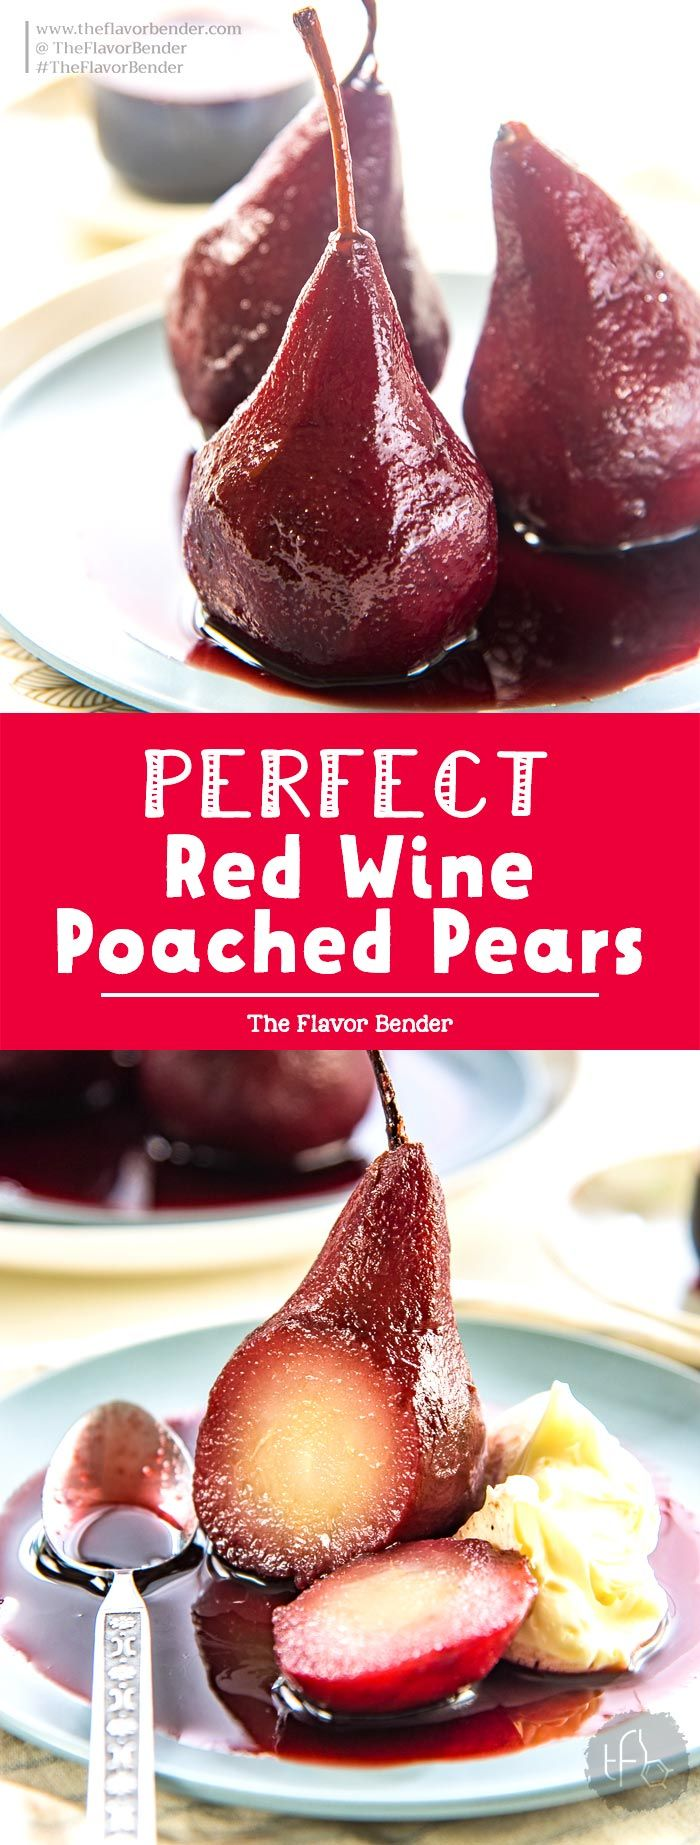 Red Wine Poached Pears A Simple And Easy Recipe That Is Absolutely Elegant Get Tips To Perfect This Sw Wine Poached Pears Pear Dessert Poached Pears Dessert